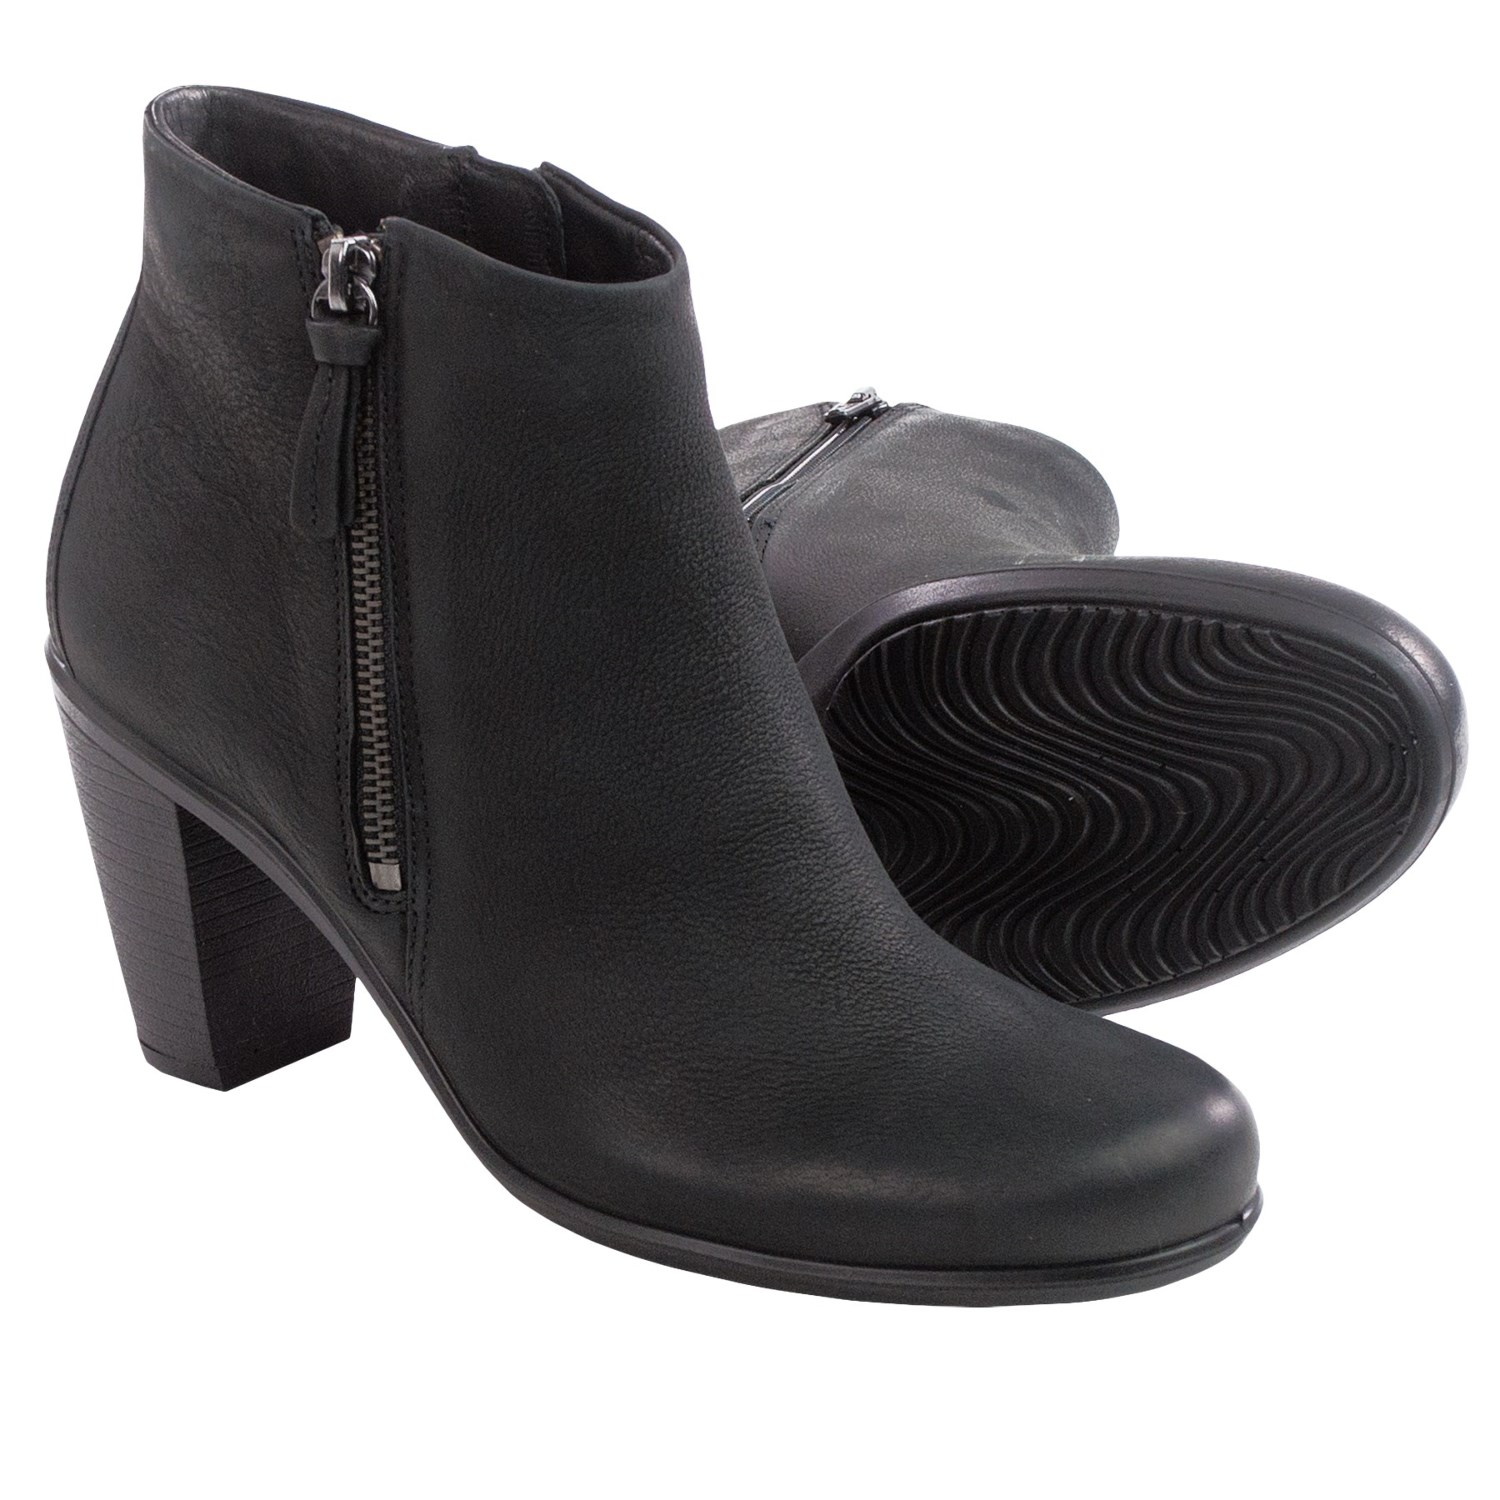 Womens Leather Ankle Boots Sale - Boot Yc